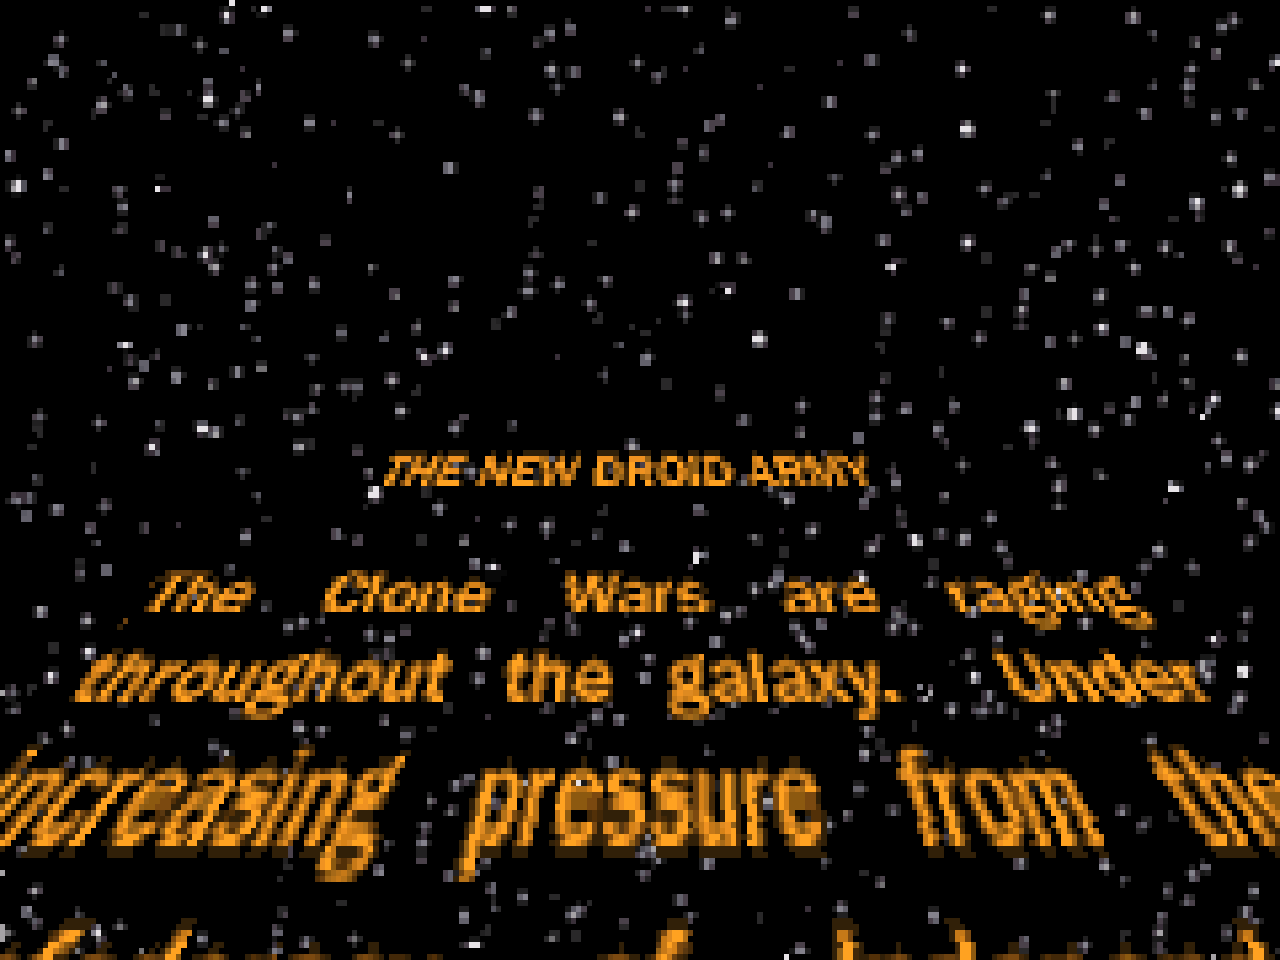 https://s3.eu-west-3.amazonaws.com/games.anthony-dessalles.com/Star Wars The New Droid Army GBA 2020 - Screenshots/Star Wars The New Droid Army-201114-184822.png